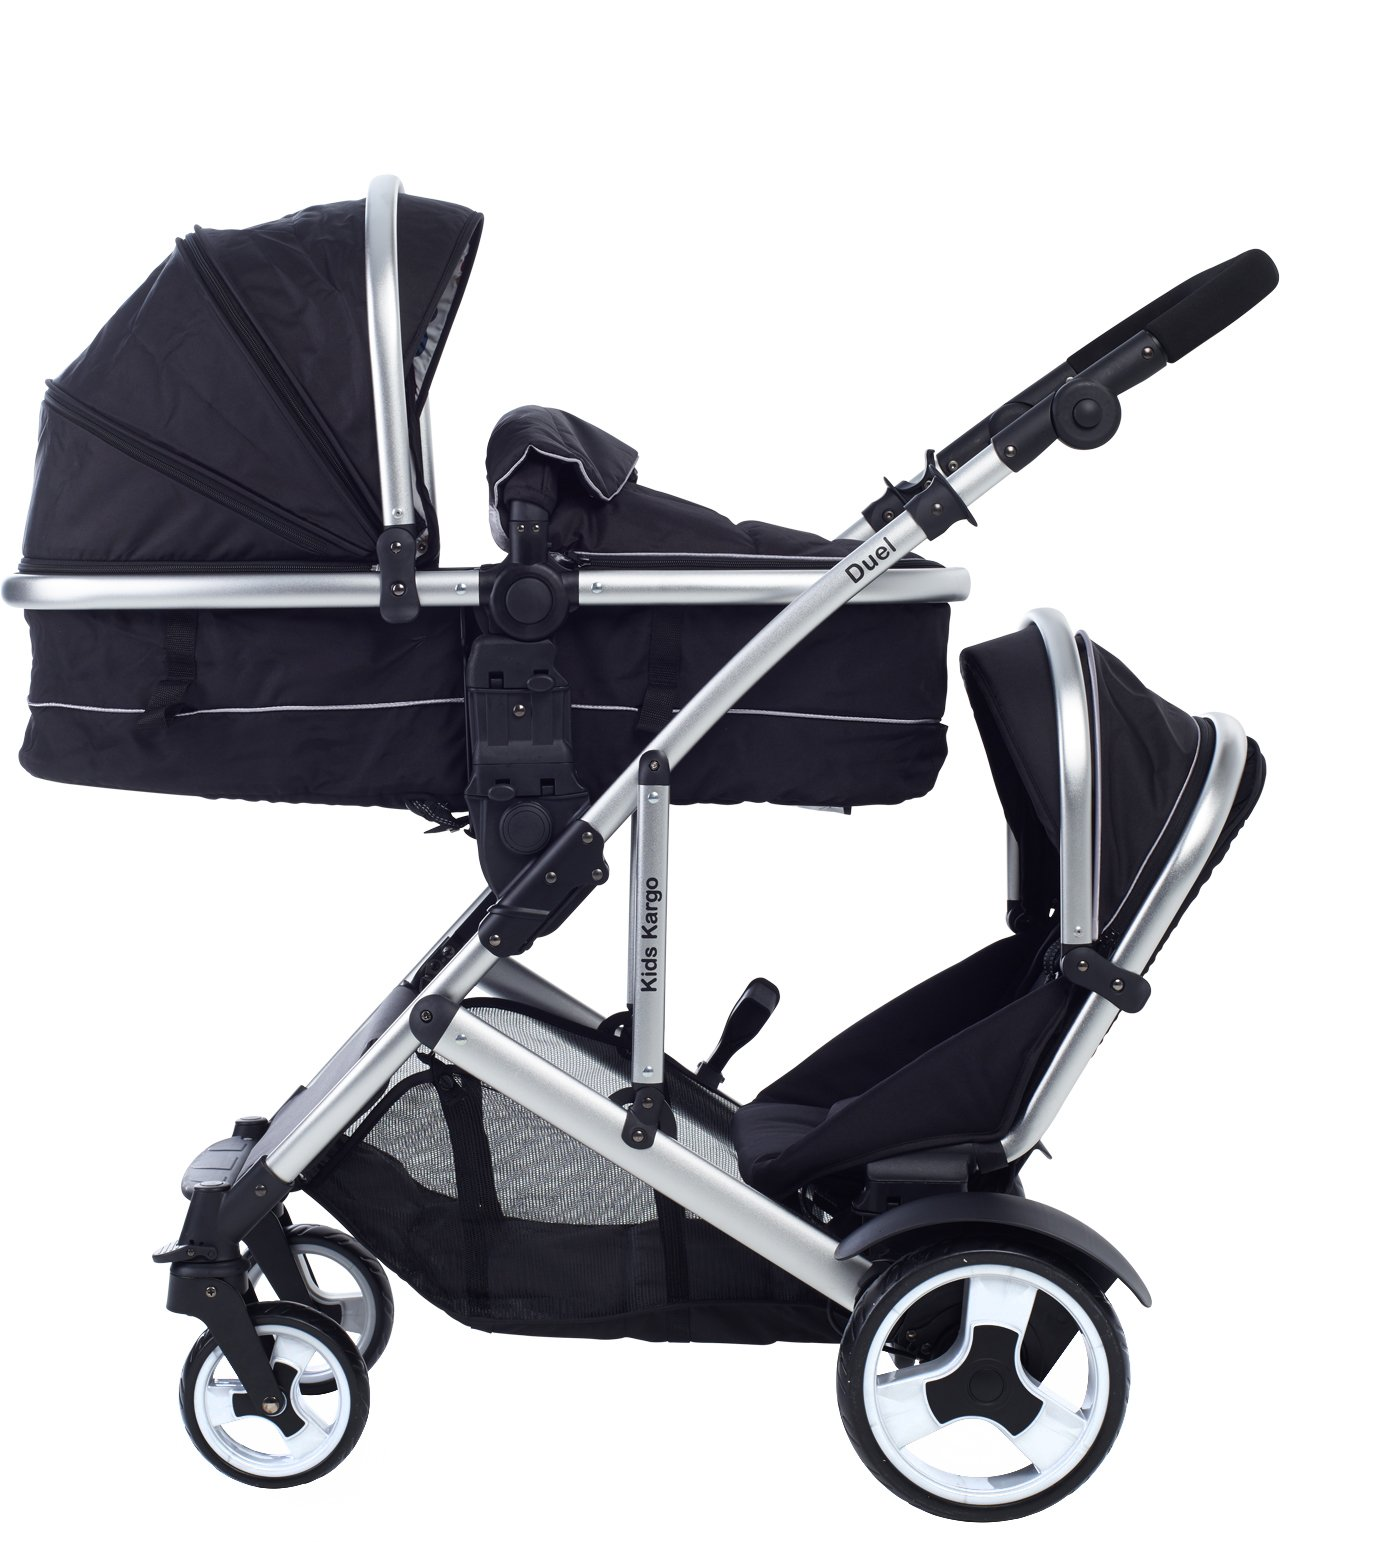 Kids Kargo Duel Combo Tandem Double Pushchair Stroller, Midnight Black Kids Kargo Tandem double pushchair suitable for newborn and toddler Complete with carrycot that converts to a seat unto to grow with your baby. carrycot has soft padded lining which zips off and mattress.. Carrycot & car seats fit in top or bottom position. compatible car seats; kidz kargo 0+, britax babysafe 0+ (no adapters needed) or maxi cosi adaptors 2